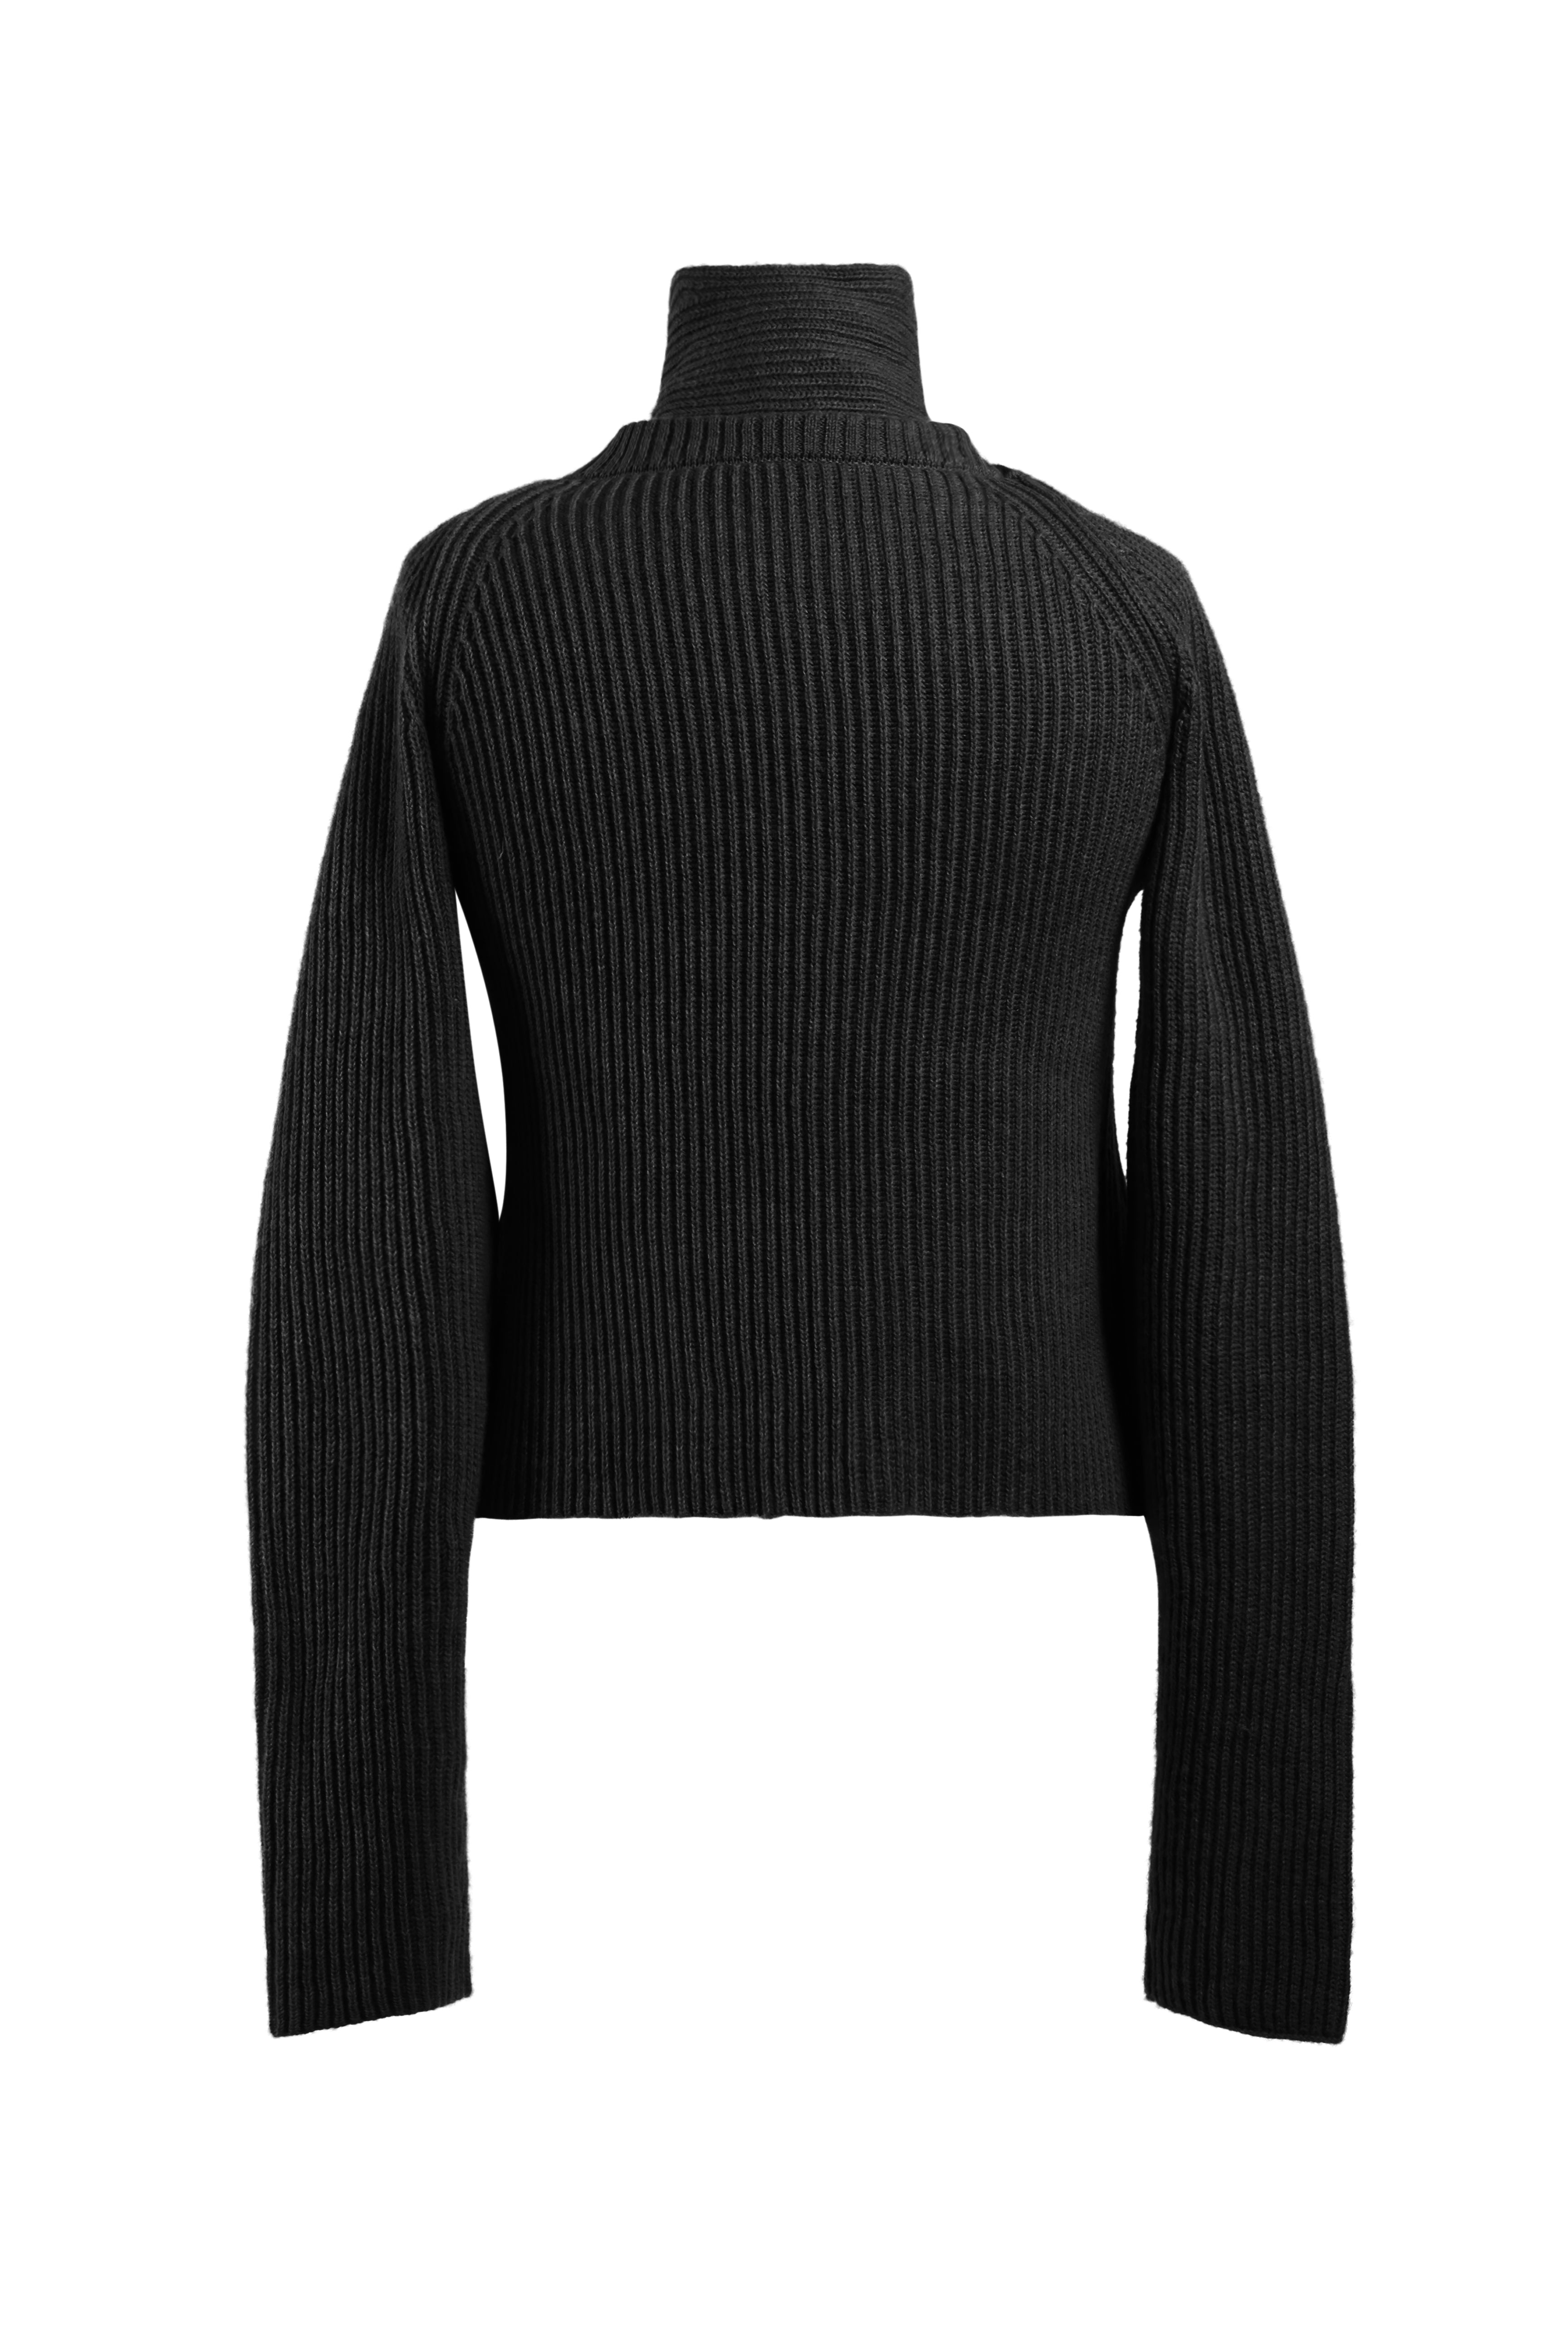 Loop Chunky Sweater - Black